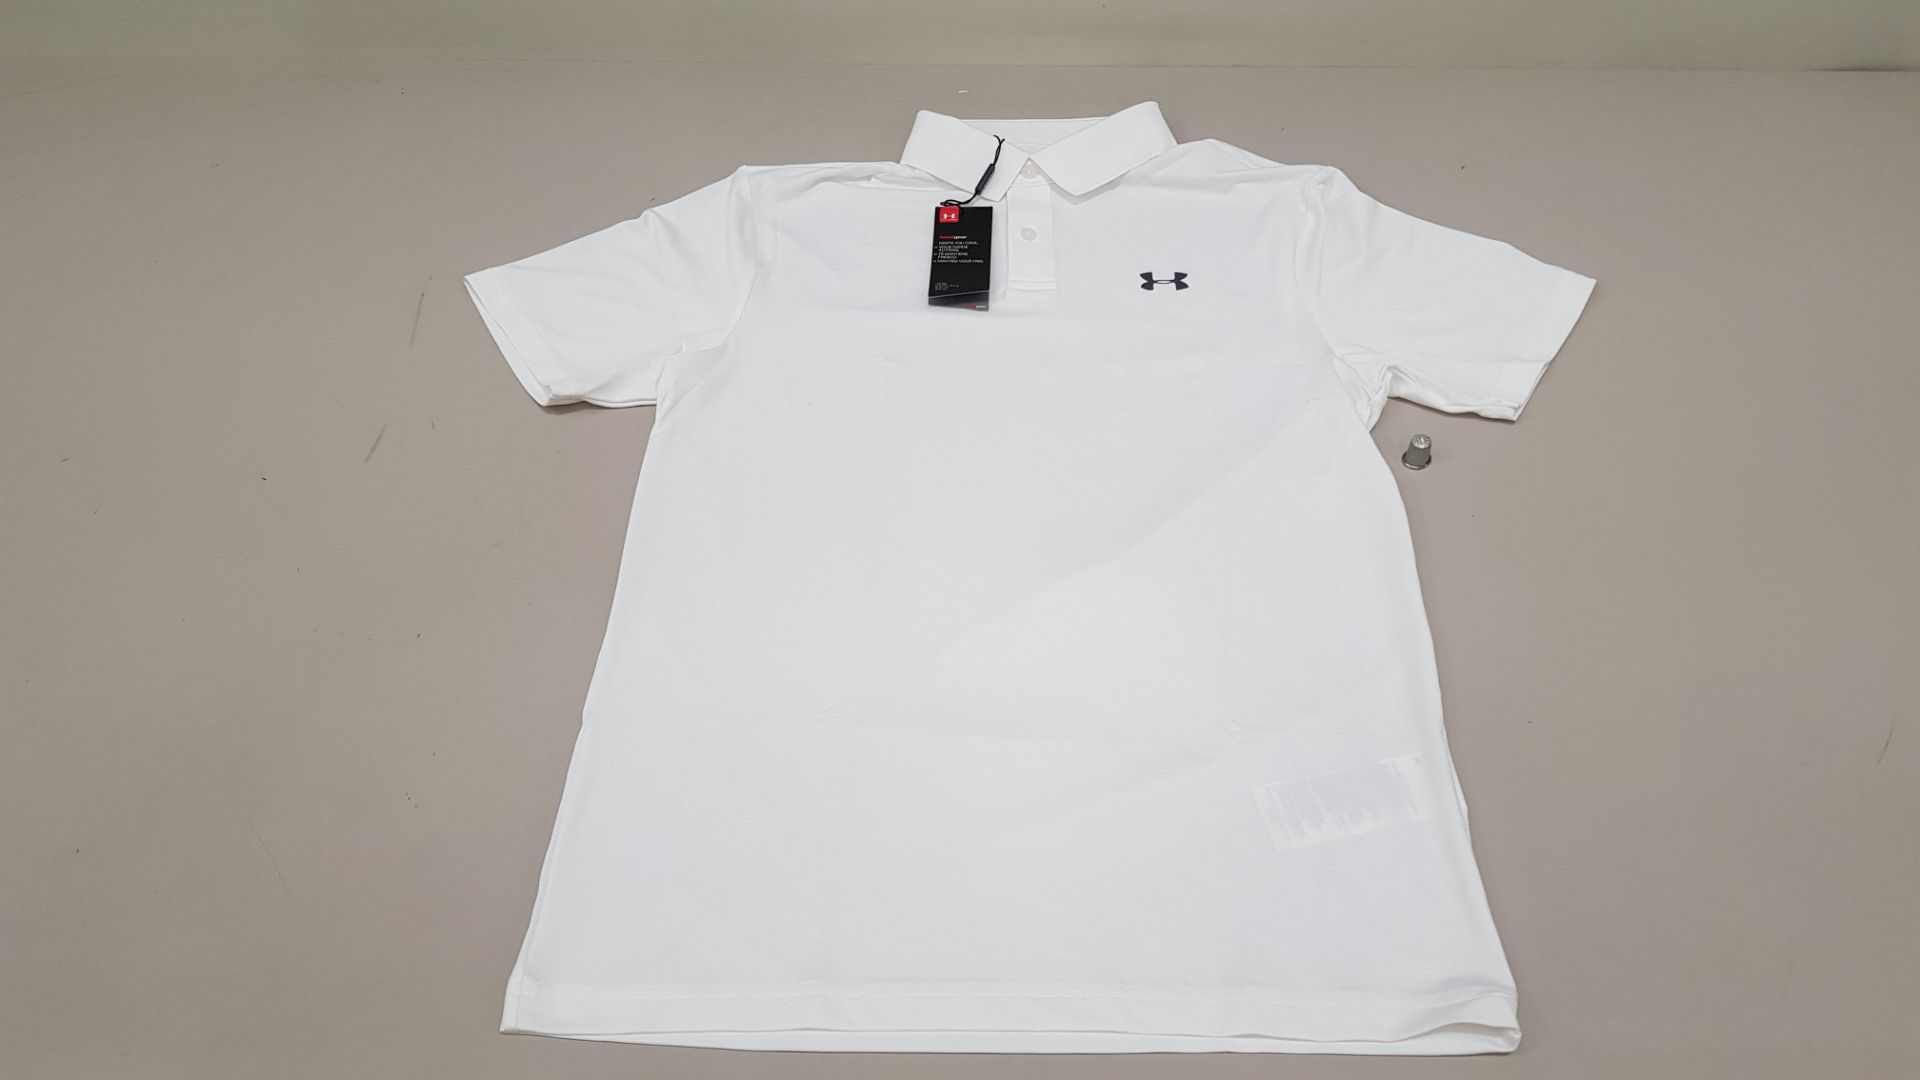 15 X BRAND NEW UNDER ARMOUR WHITE SHIRT SIZE SM